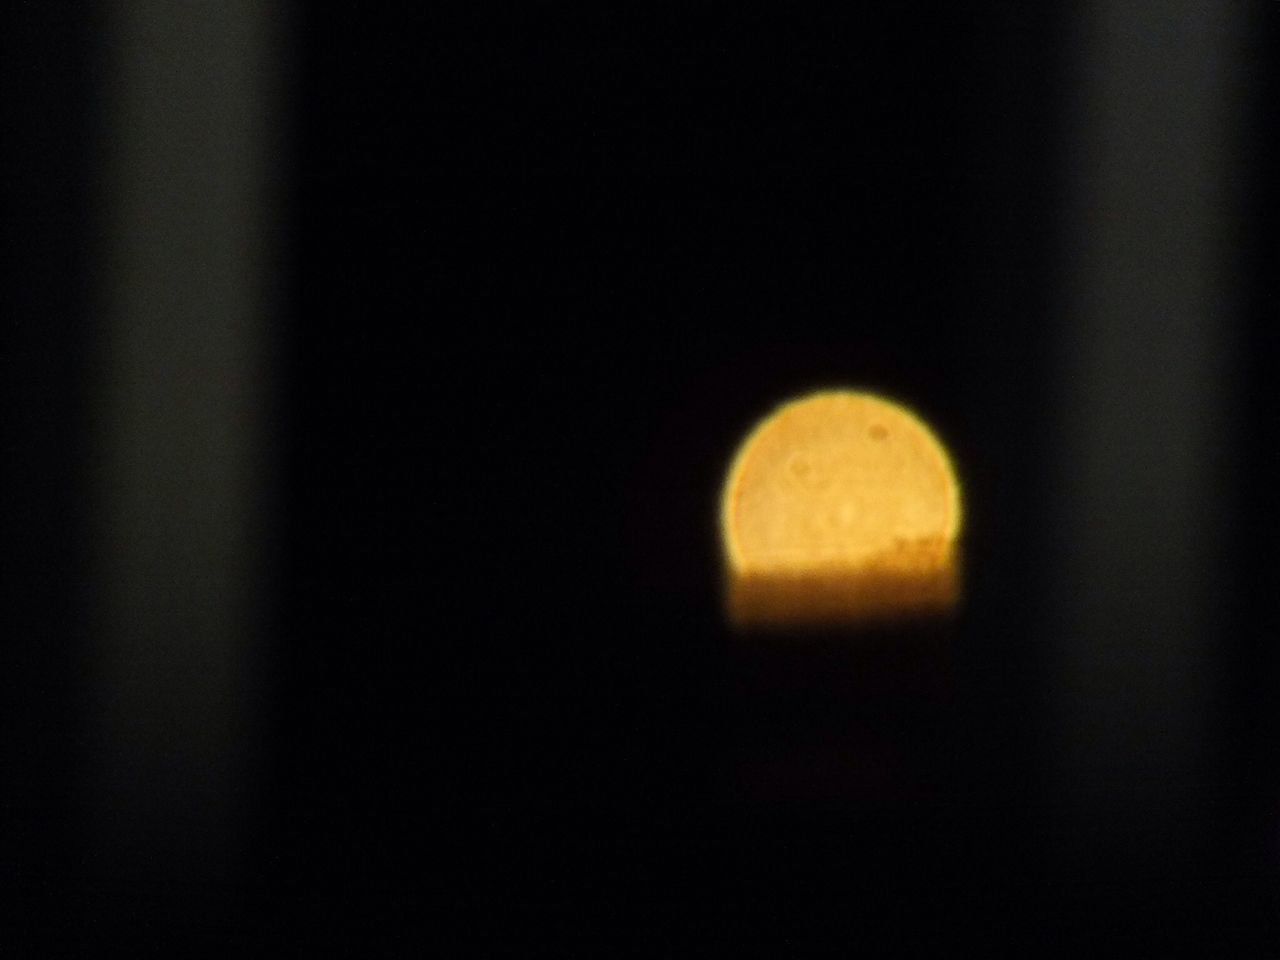 night, moon, beauty in nature, nature, no people, yellow, astronomy, outdoors, close-up